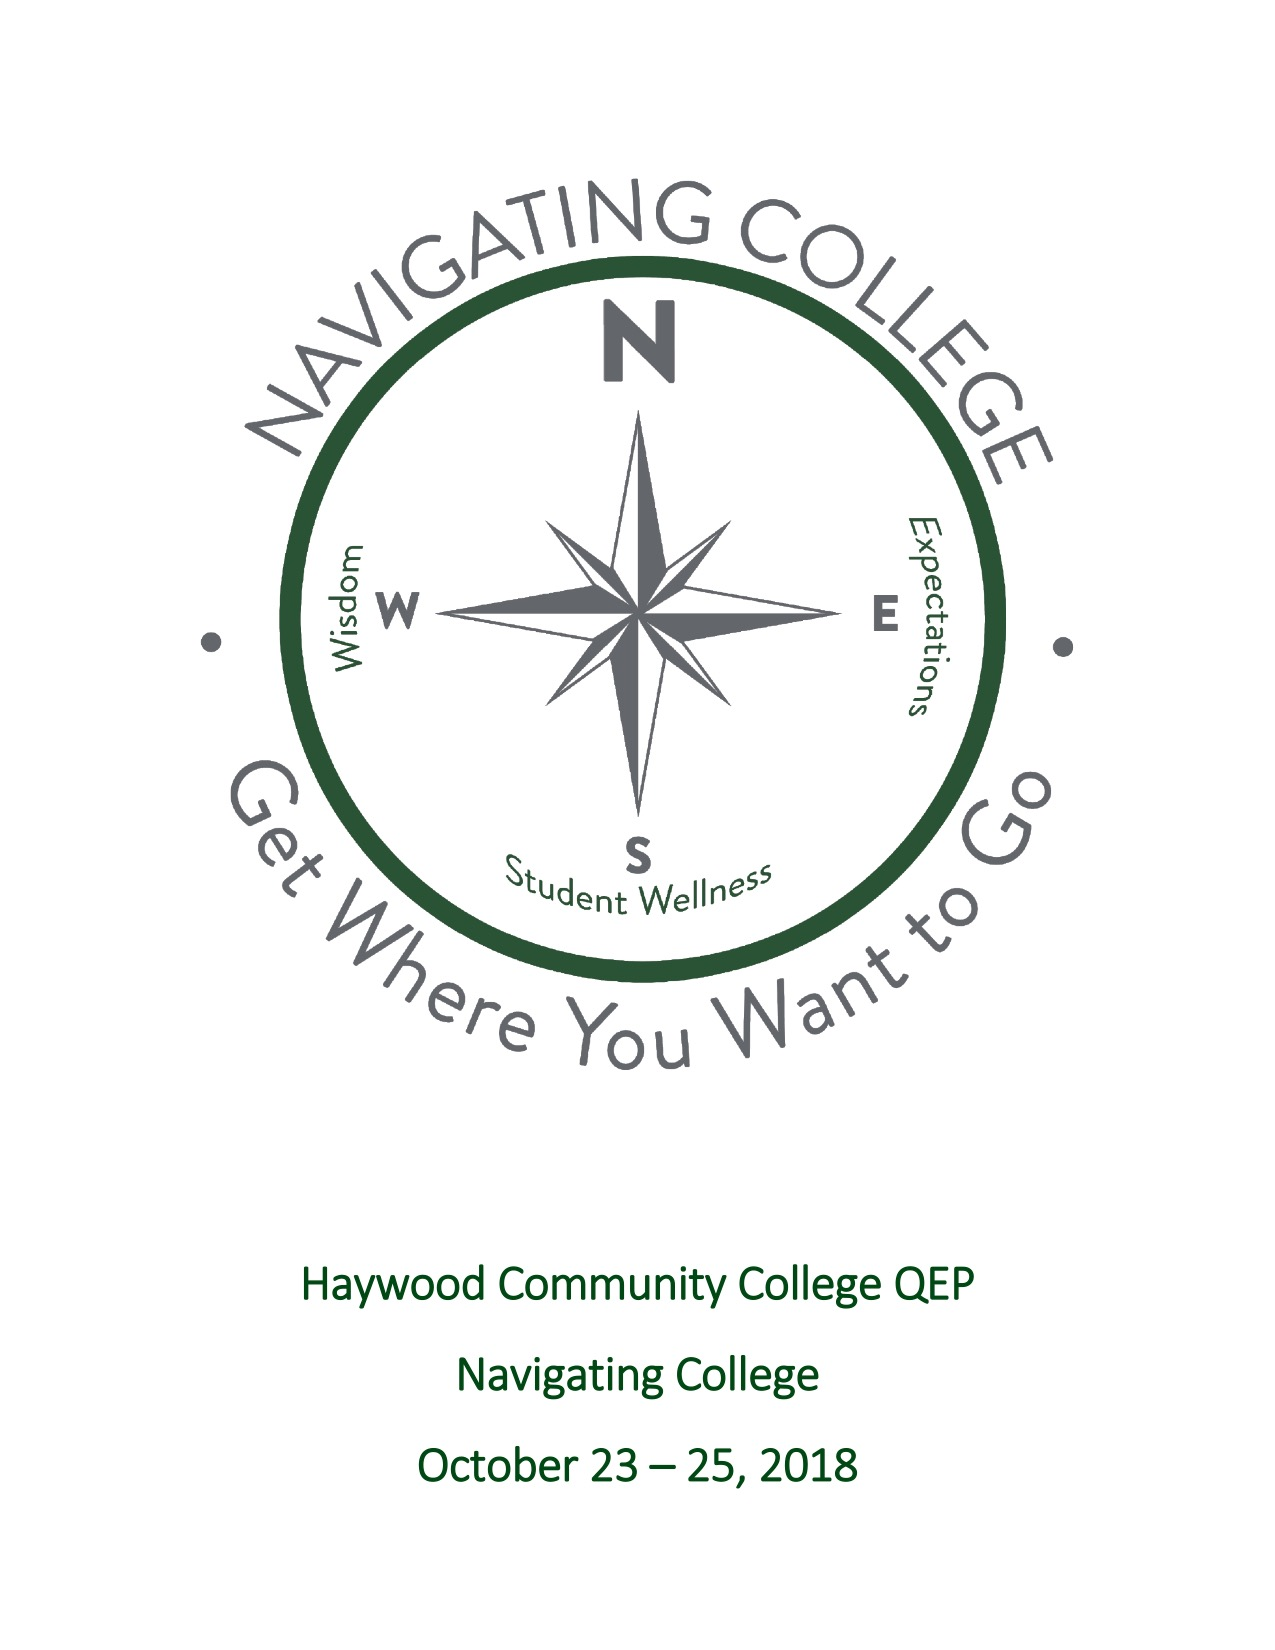 Front Cover of the Navigating College Quality Enhancement Plan